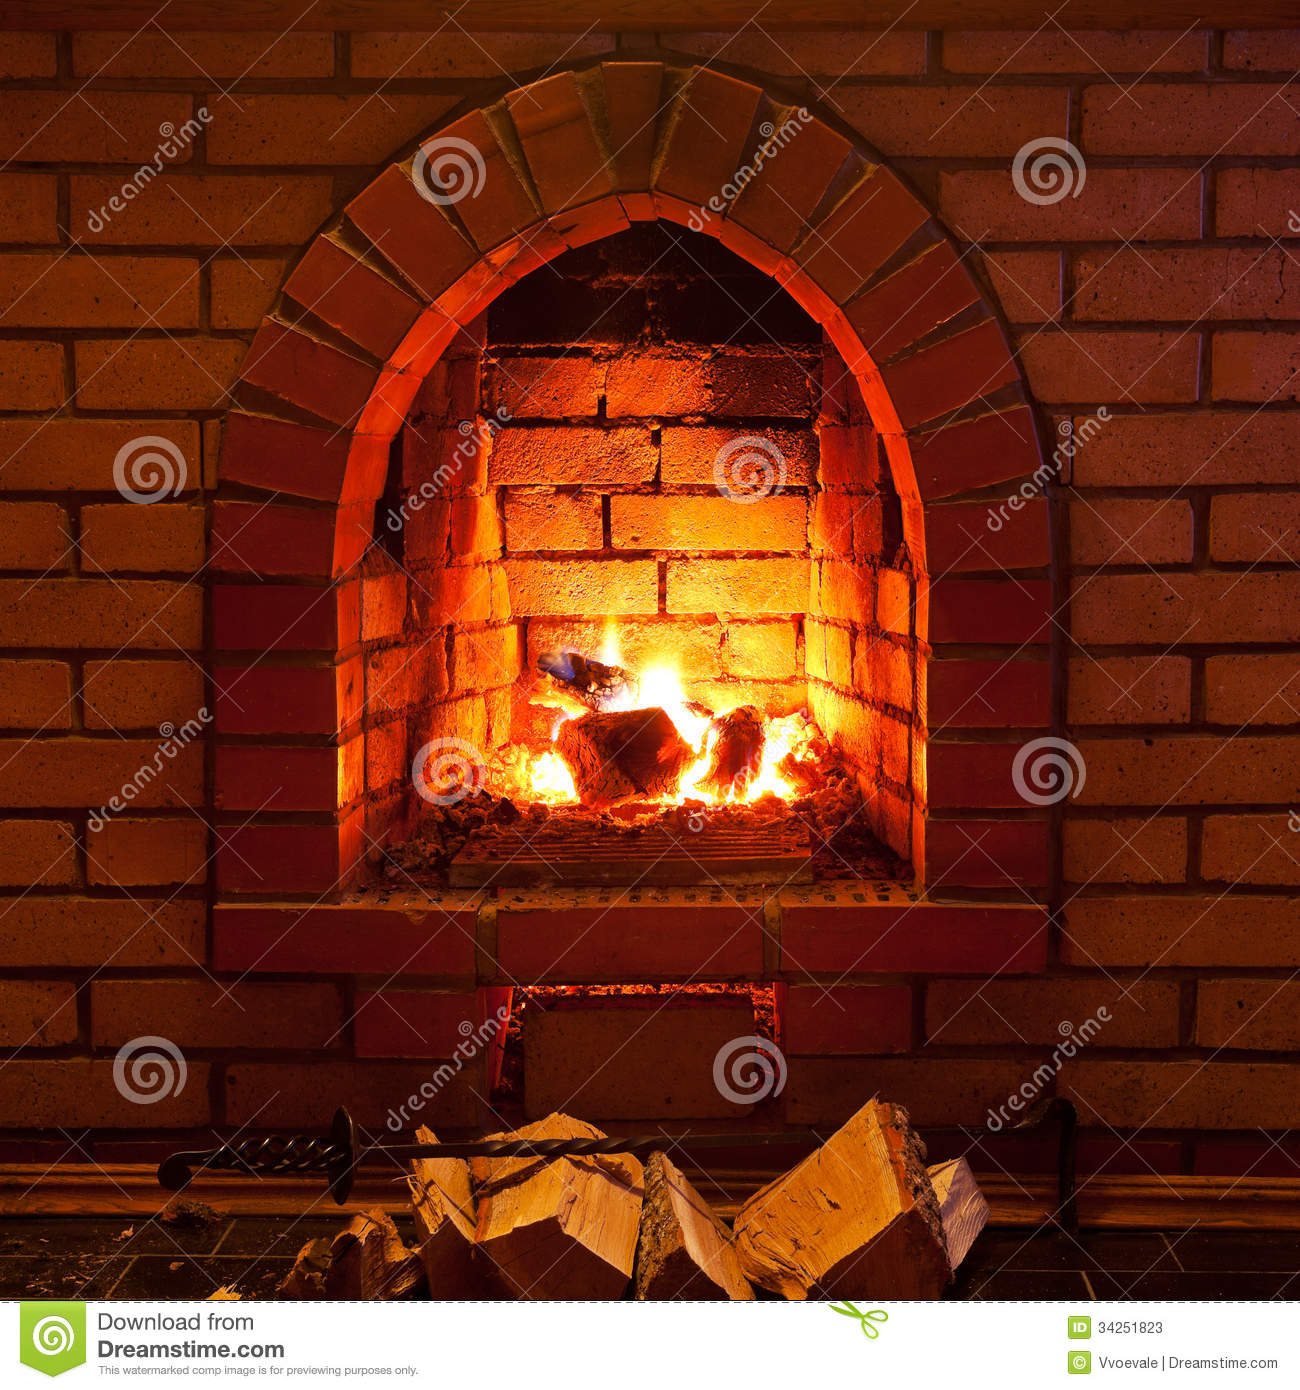 fire in fireplace stock image image of indoor brick 34251823